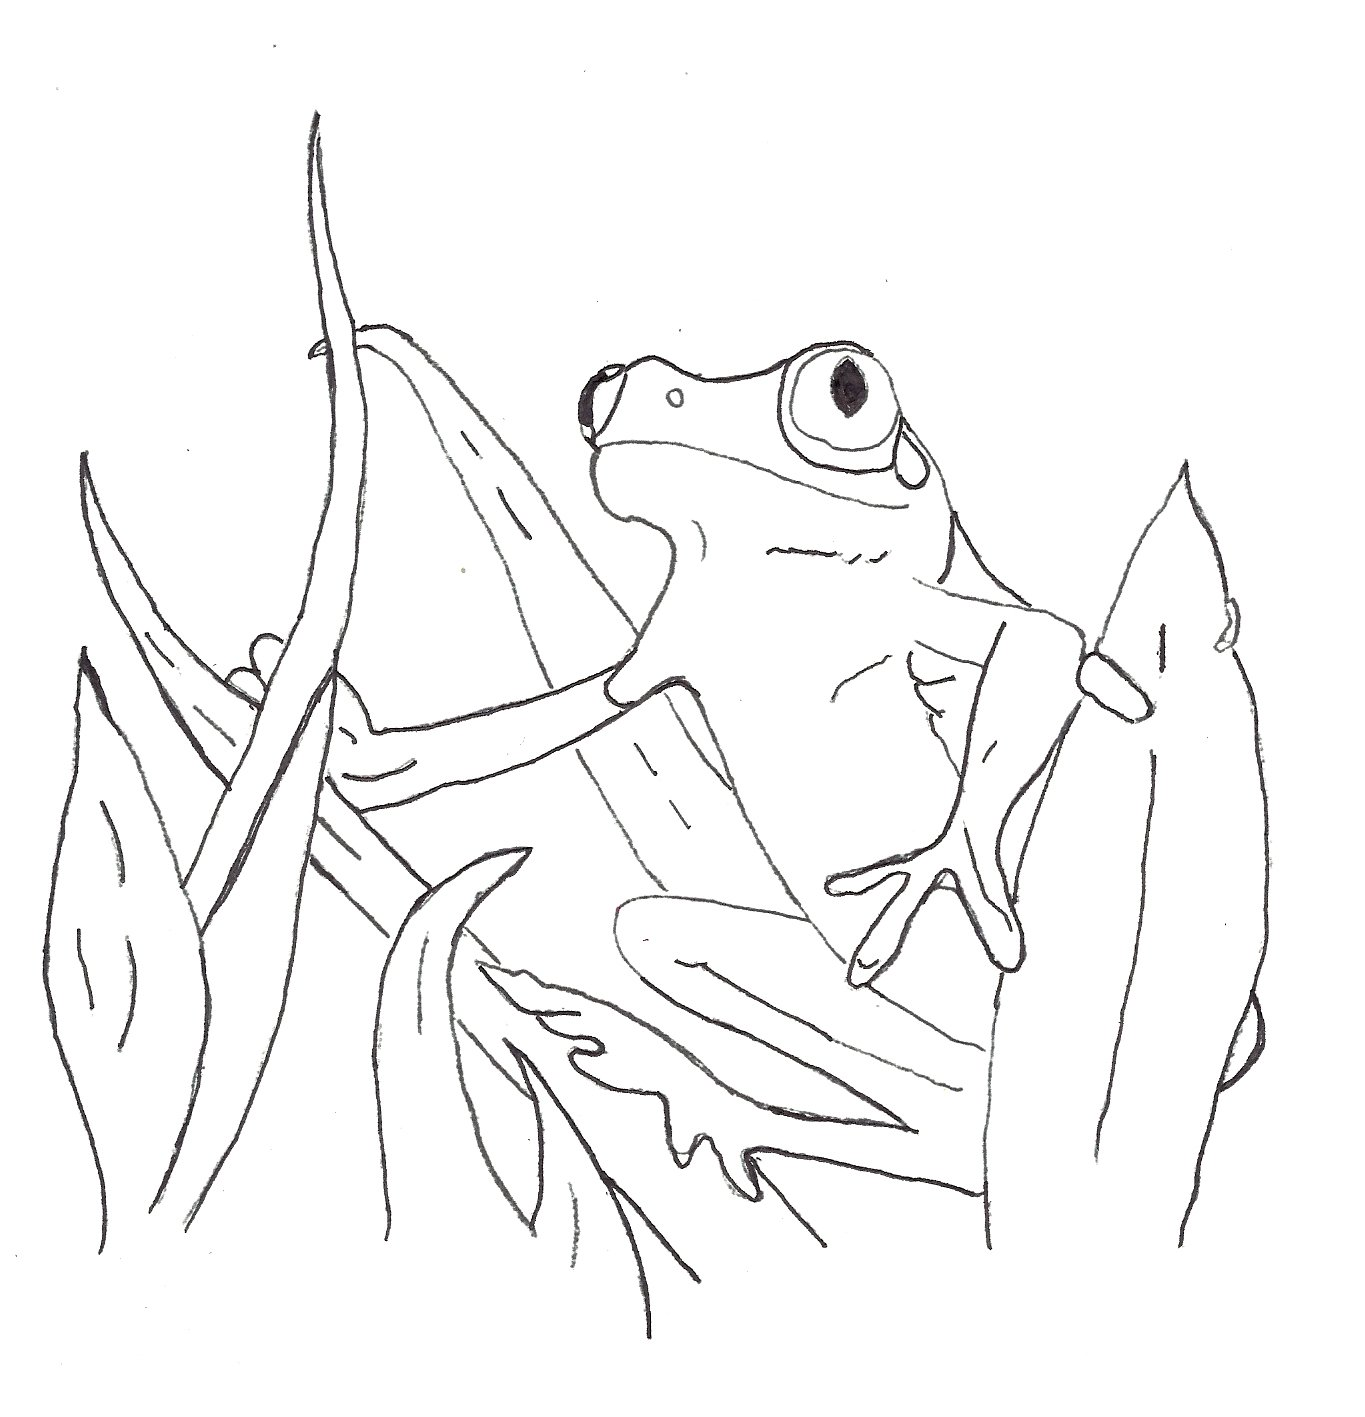 Green Tree Frog Drawing at GetDrawings.com | Free for personal use ...